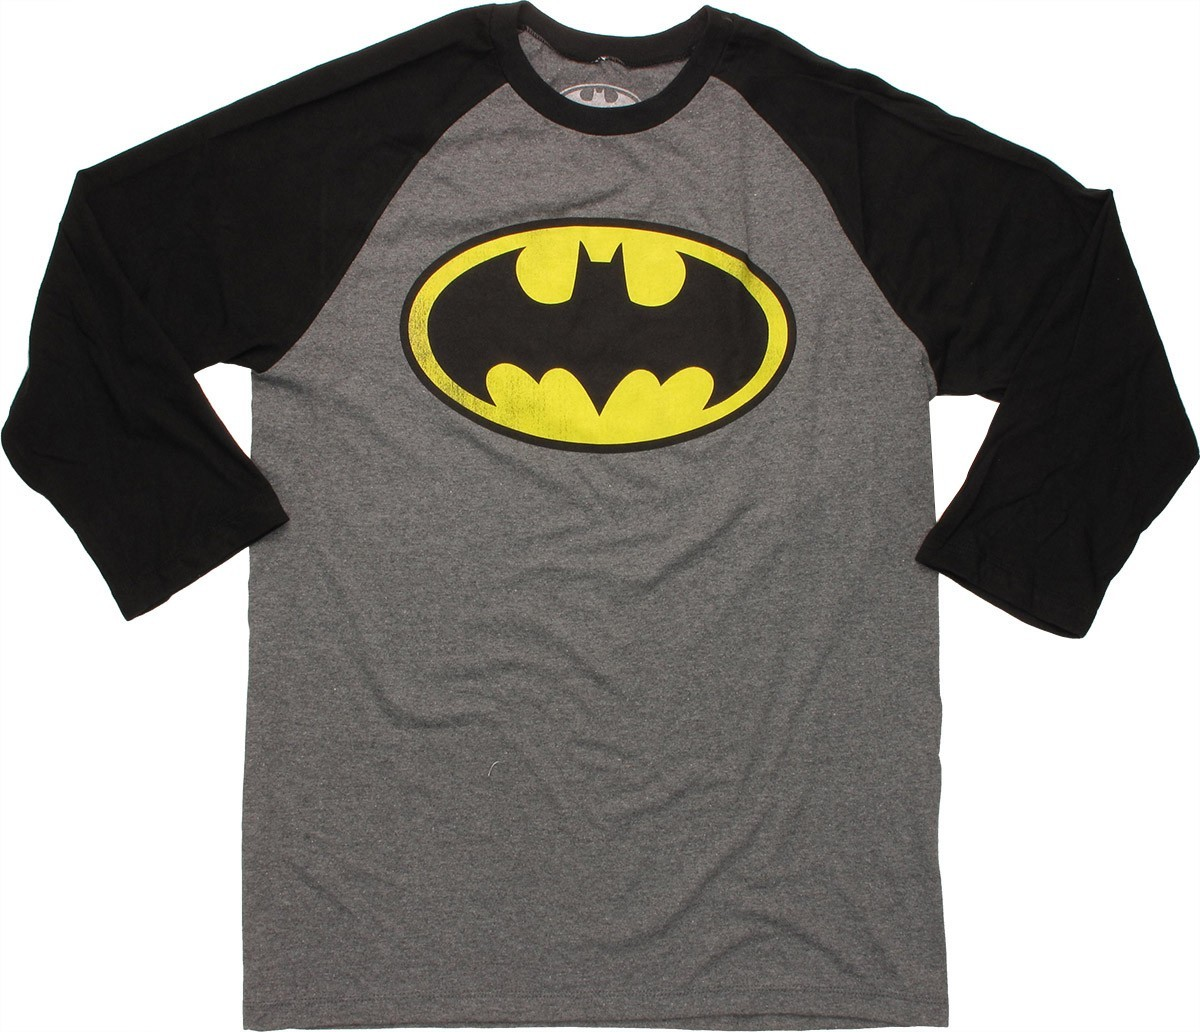 Find great deals on eBay for batman top. Shop with confidence.